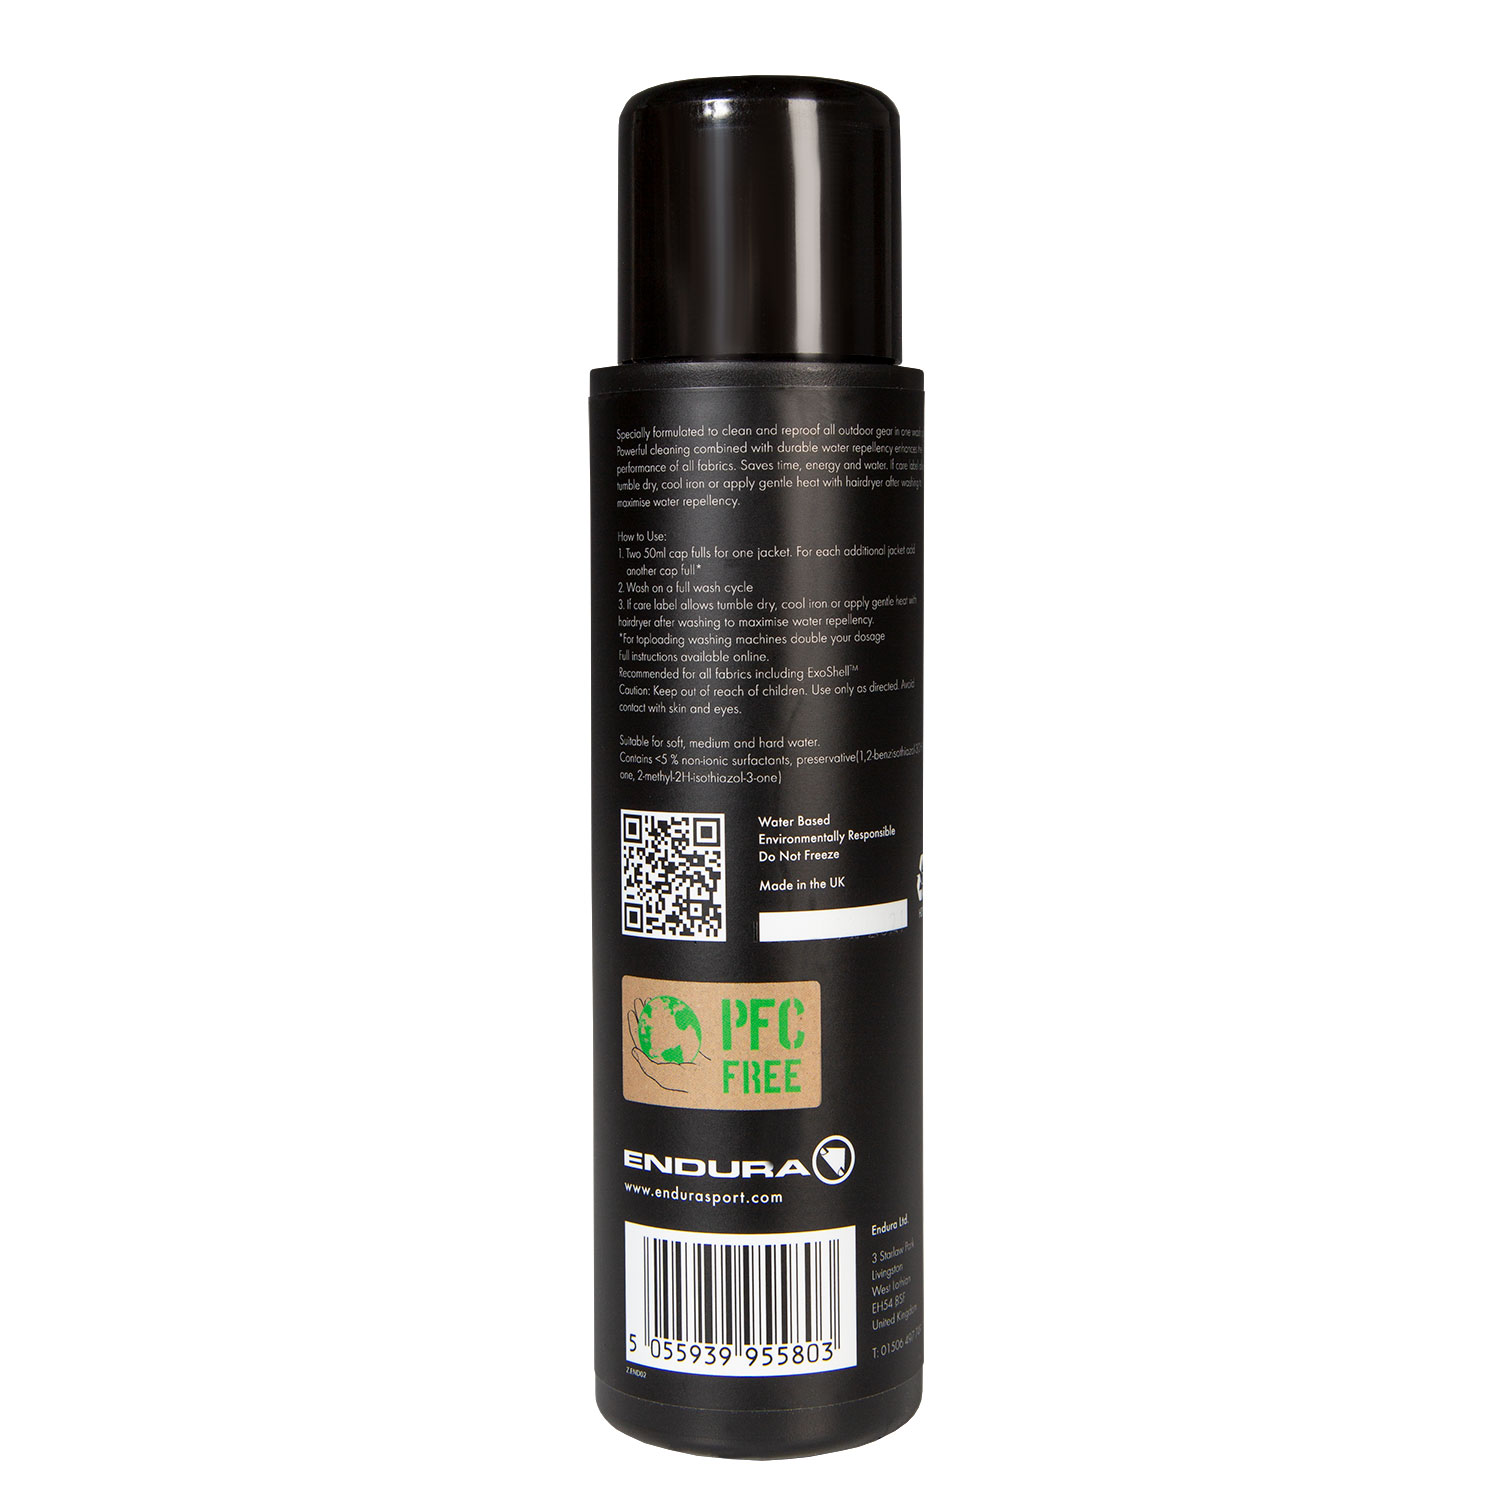 Apparel Cleaner and Re-proofer 300ml back